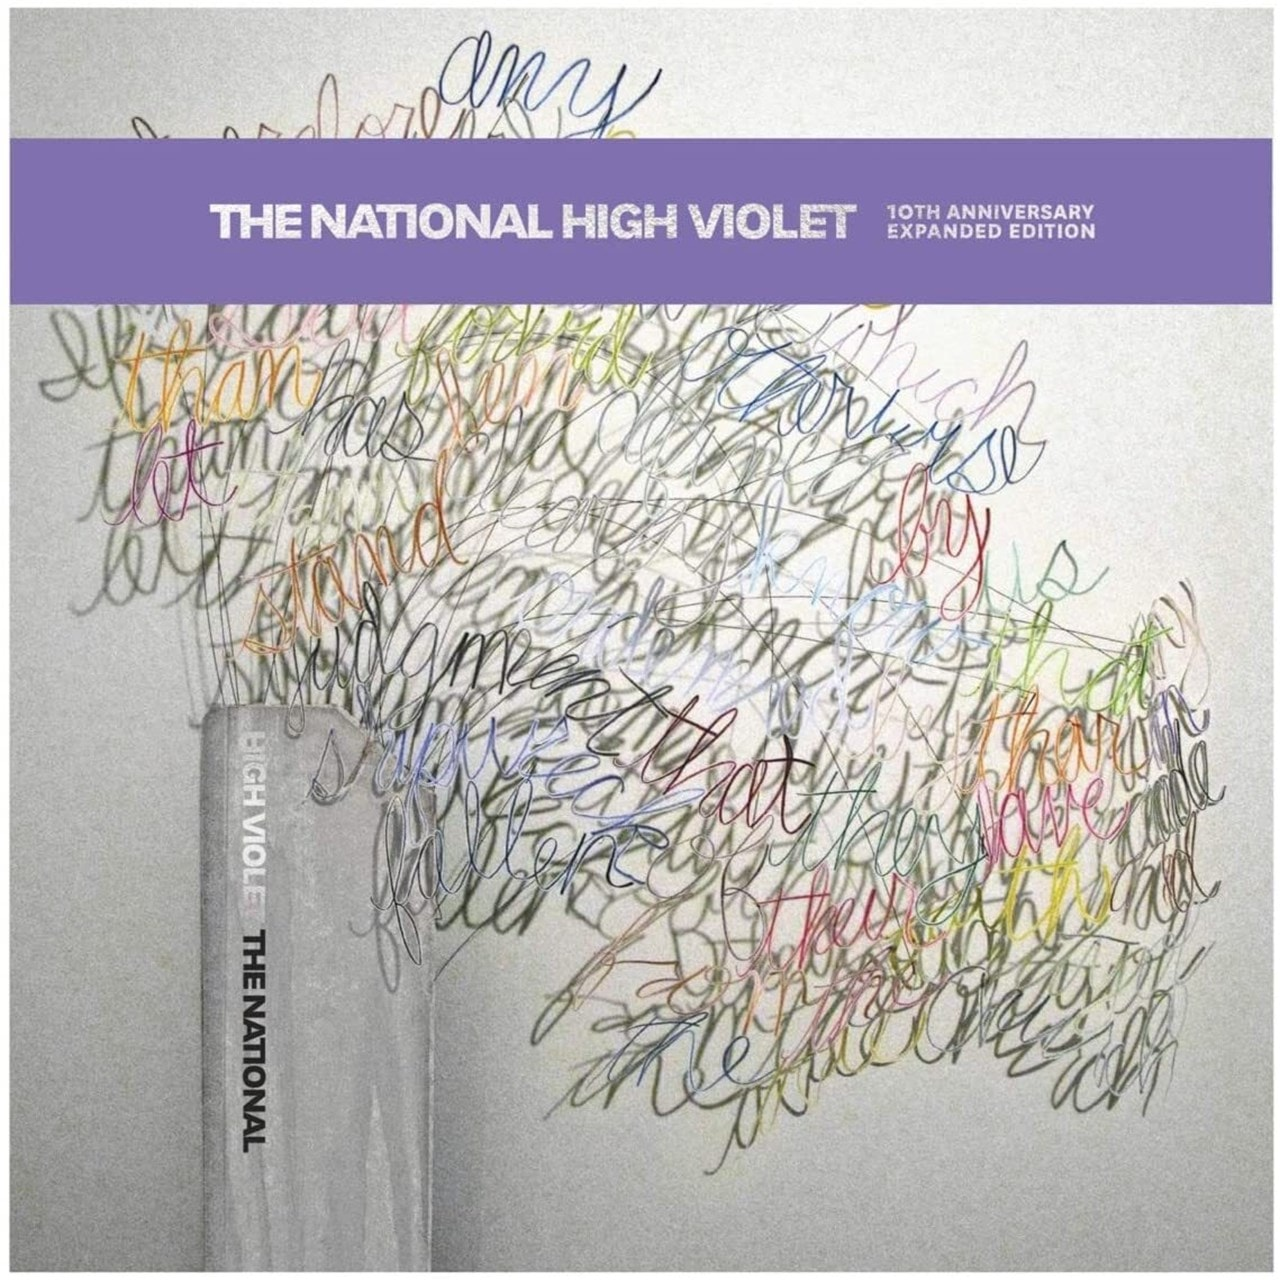 High Violet - 10th Anniversary Expanded Edition - 2